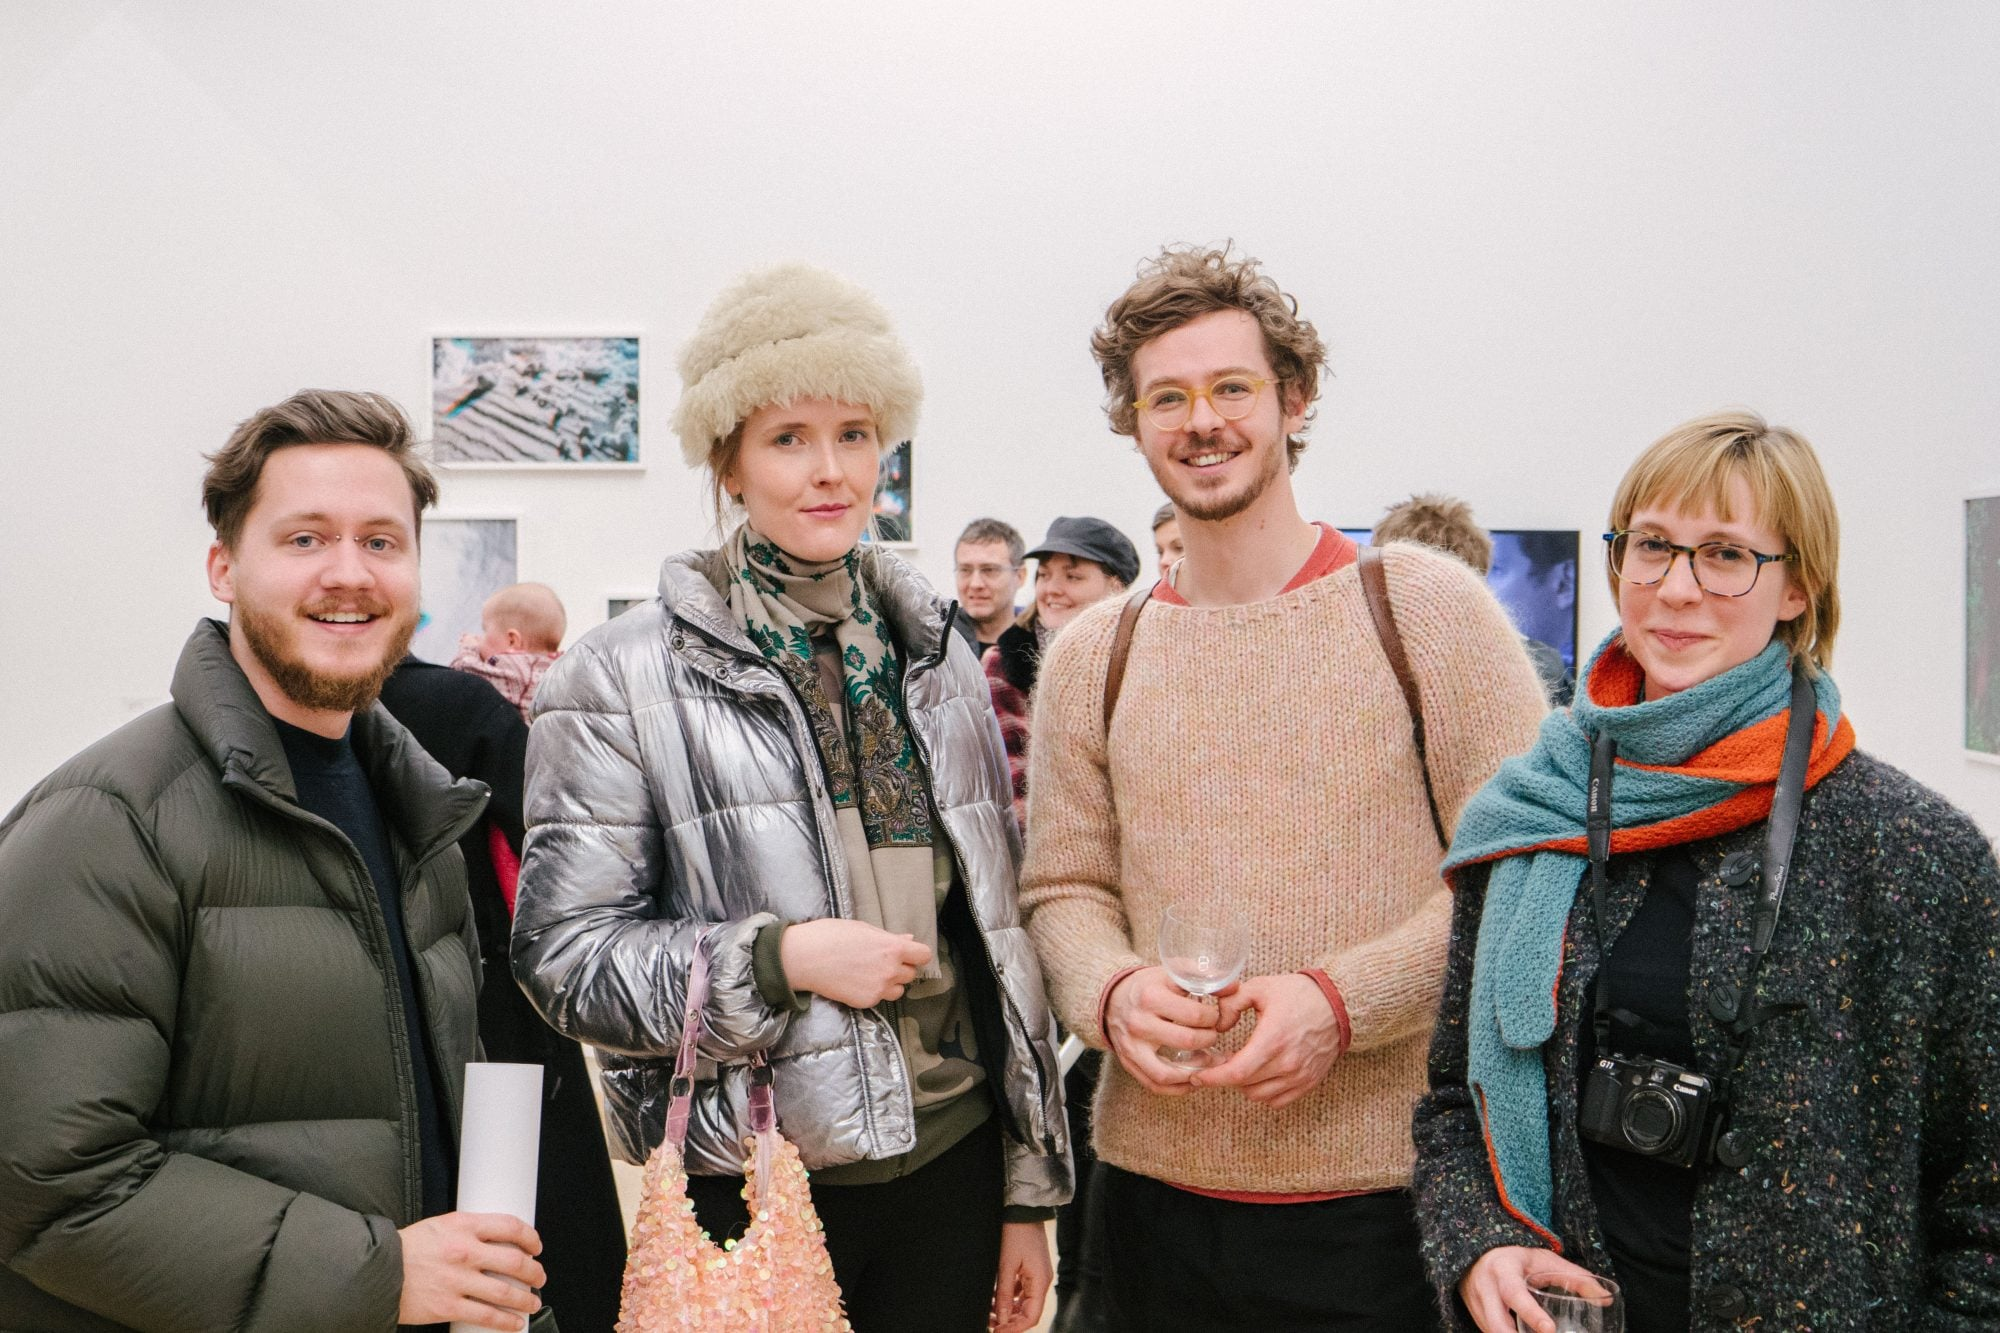 In Photos: Iceland's Art Crowd Gathers For 'Embody' Exhibition Opening